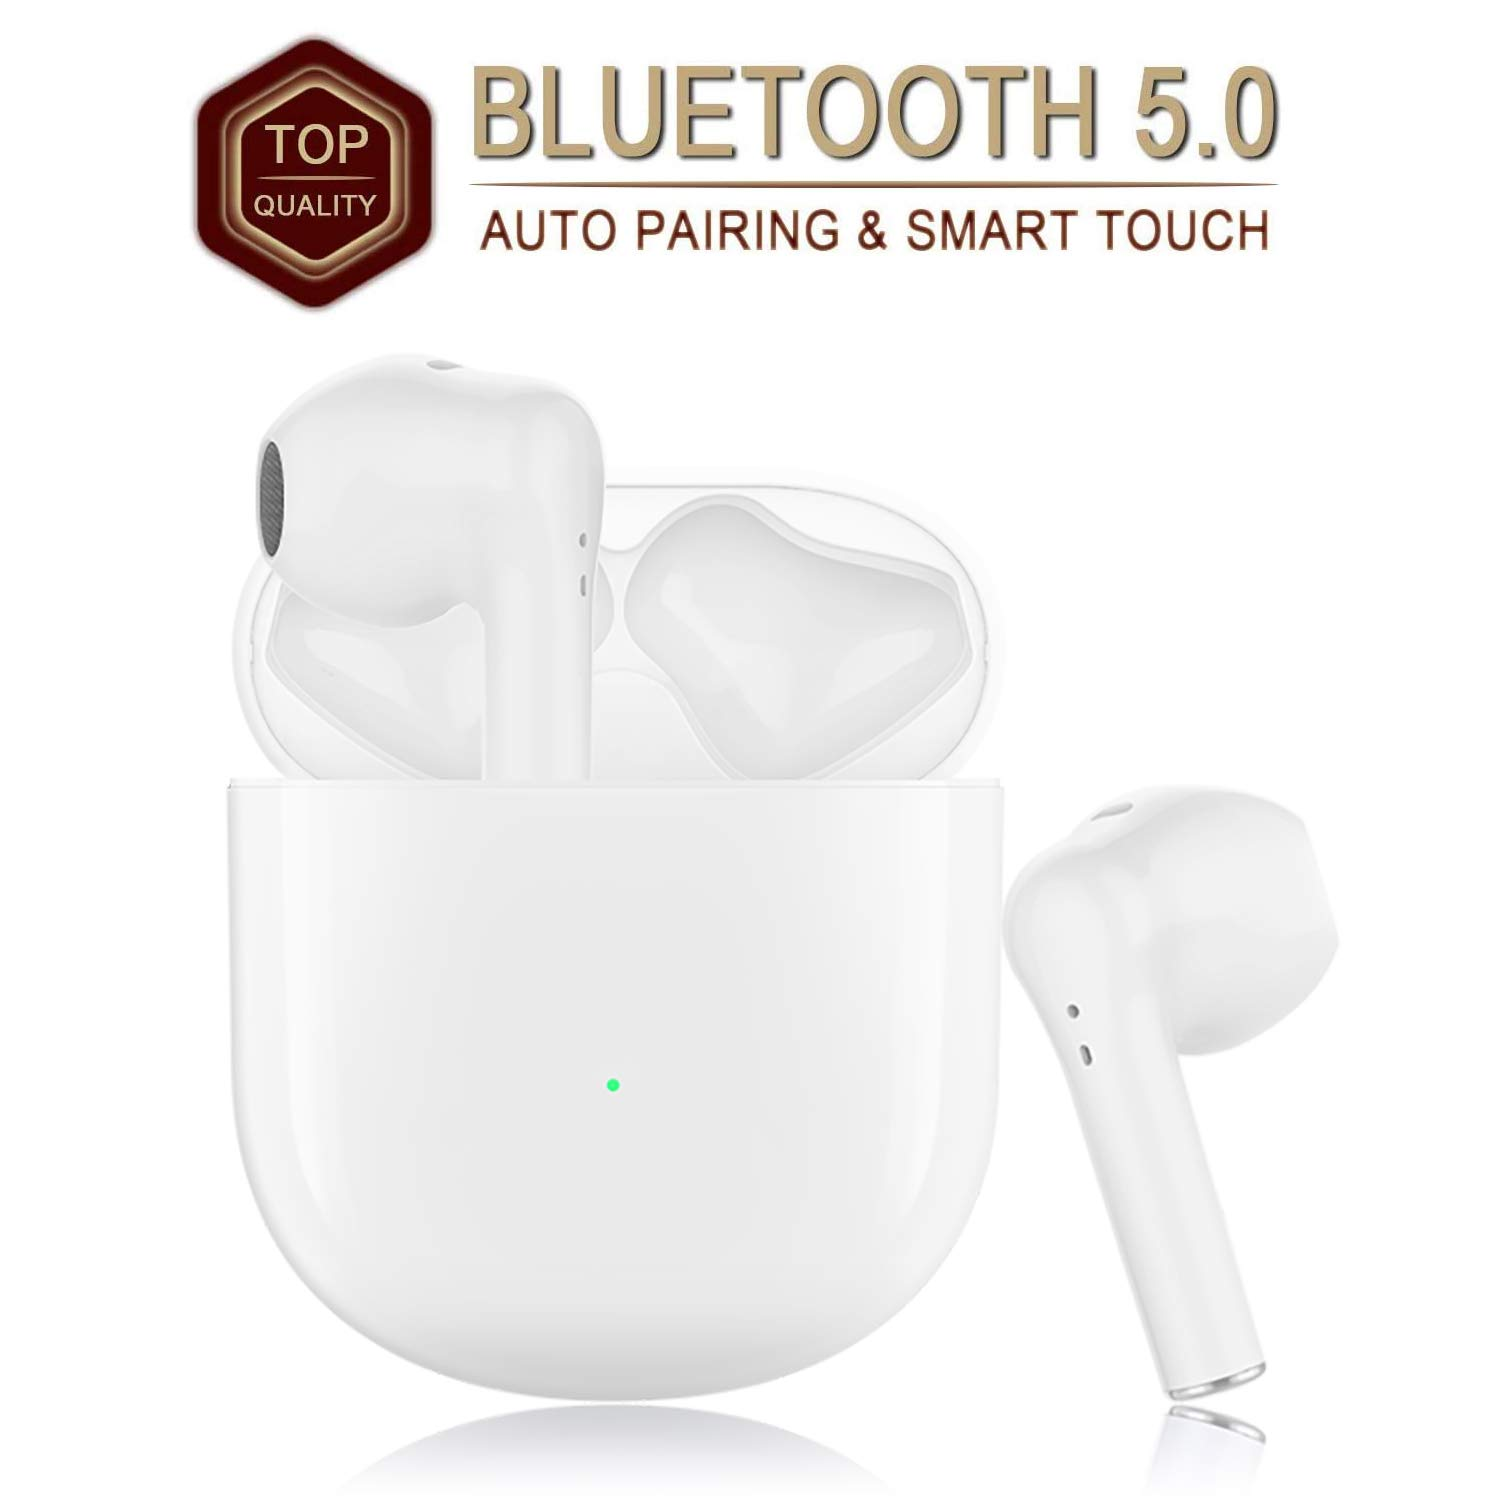 White Wireless Earbuds Bluetooth Earbuds Bluetooth Headphones【24Hrs Charging Case】 3D Stereo IPX7 Waterproof Pop-ups Auto Pairing Fast Charging for Earphone Samsung Apple Airpods Wireless Earbuds